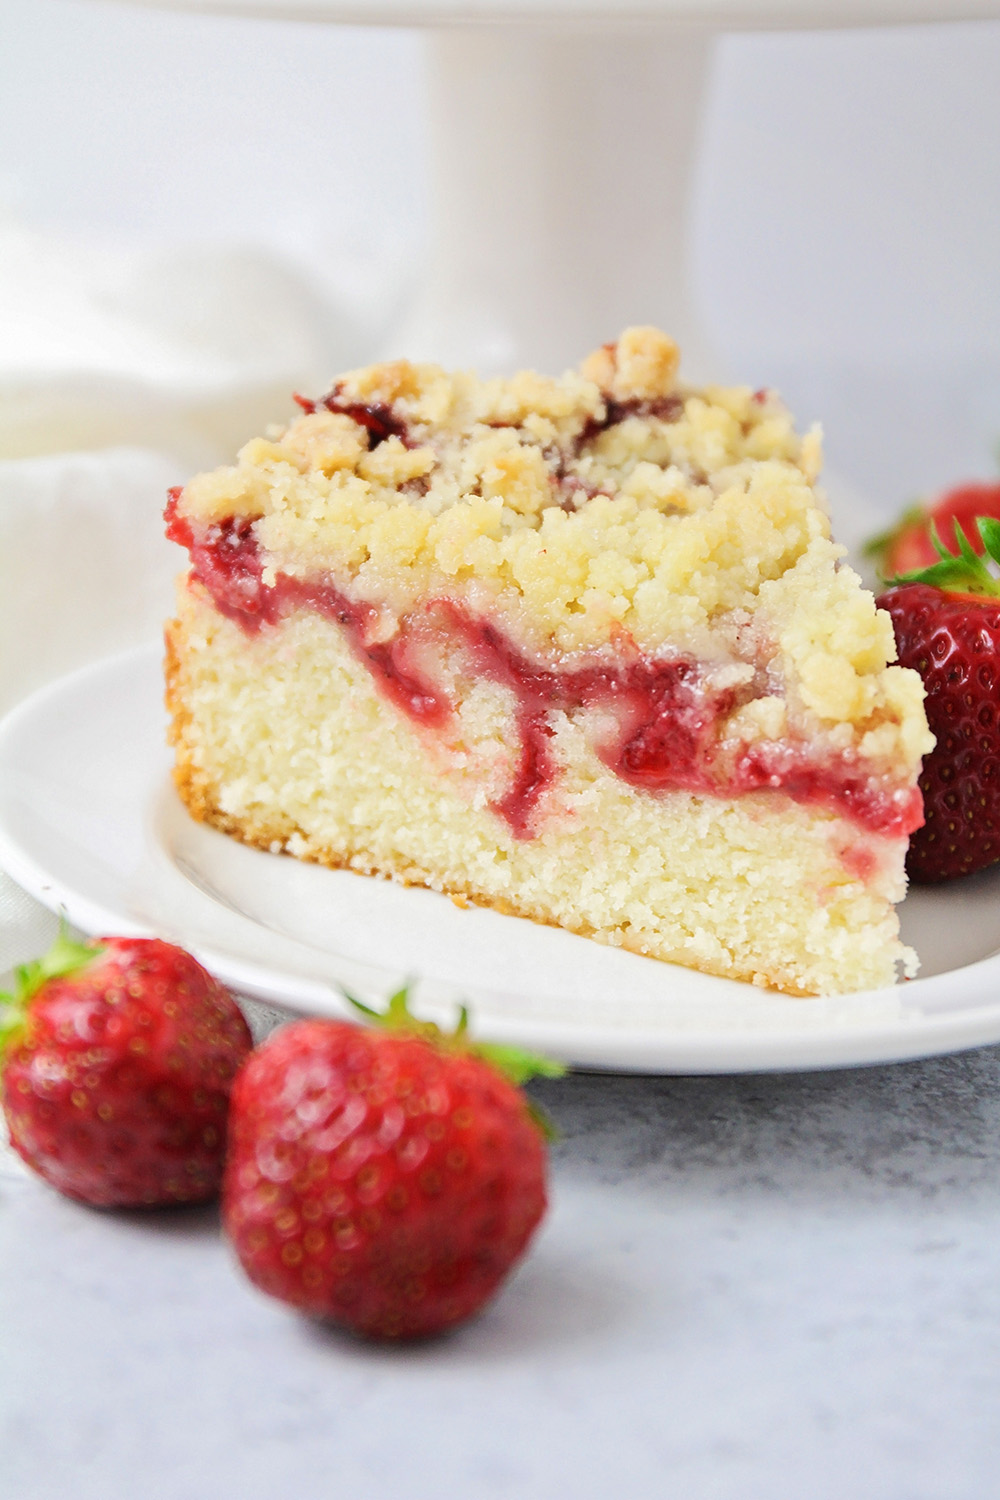 This strawberry crumb cake is so simple and delicious, and has the best sweet strawberry flavor!